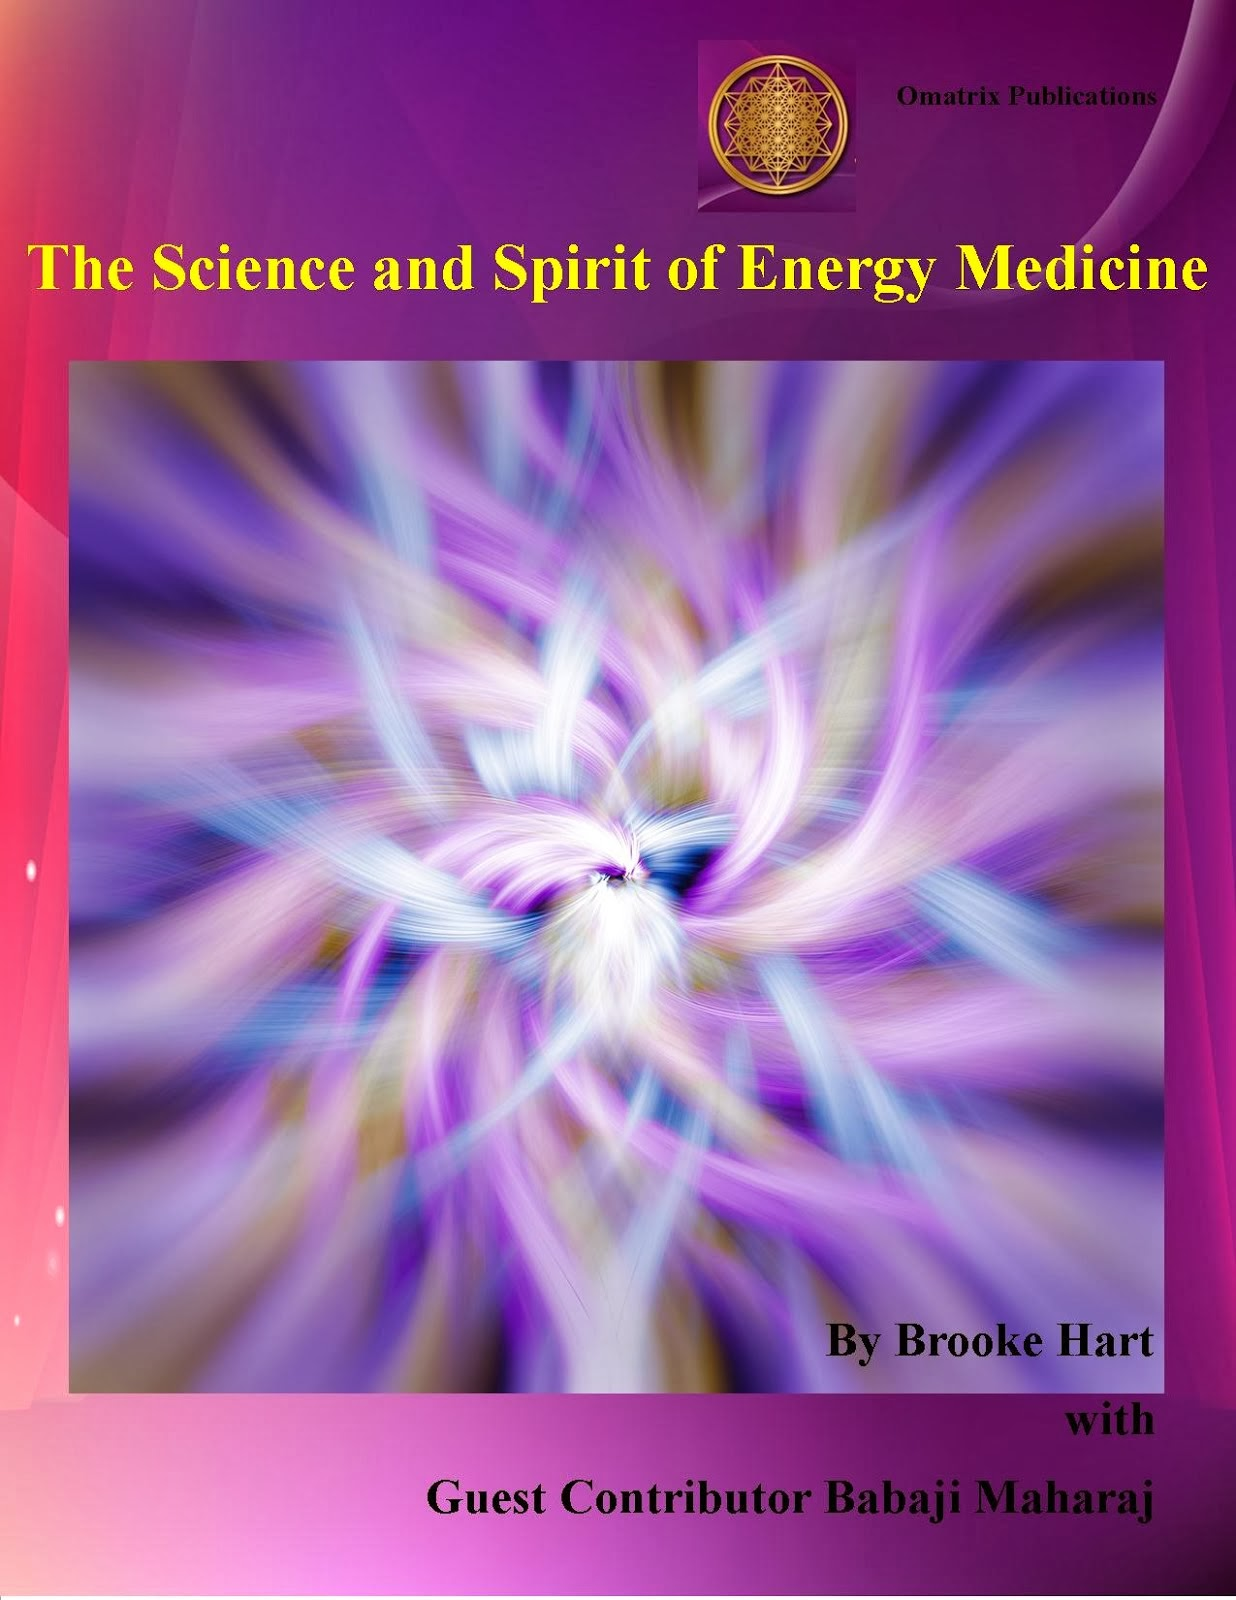 The Science and Spirit of Energy Medicine